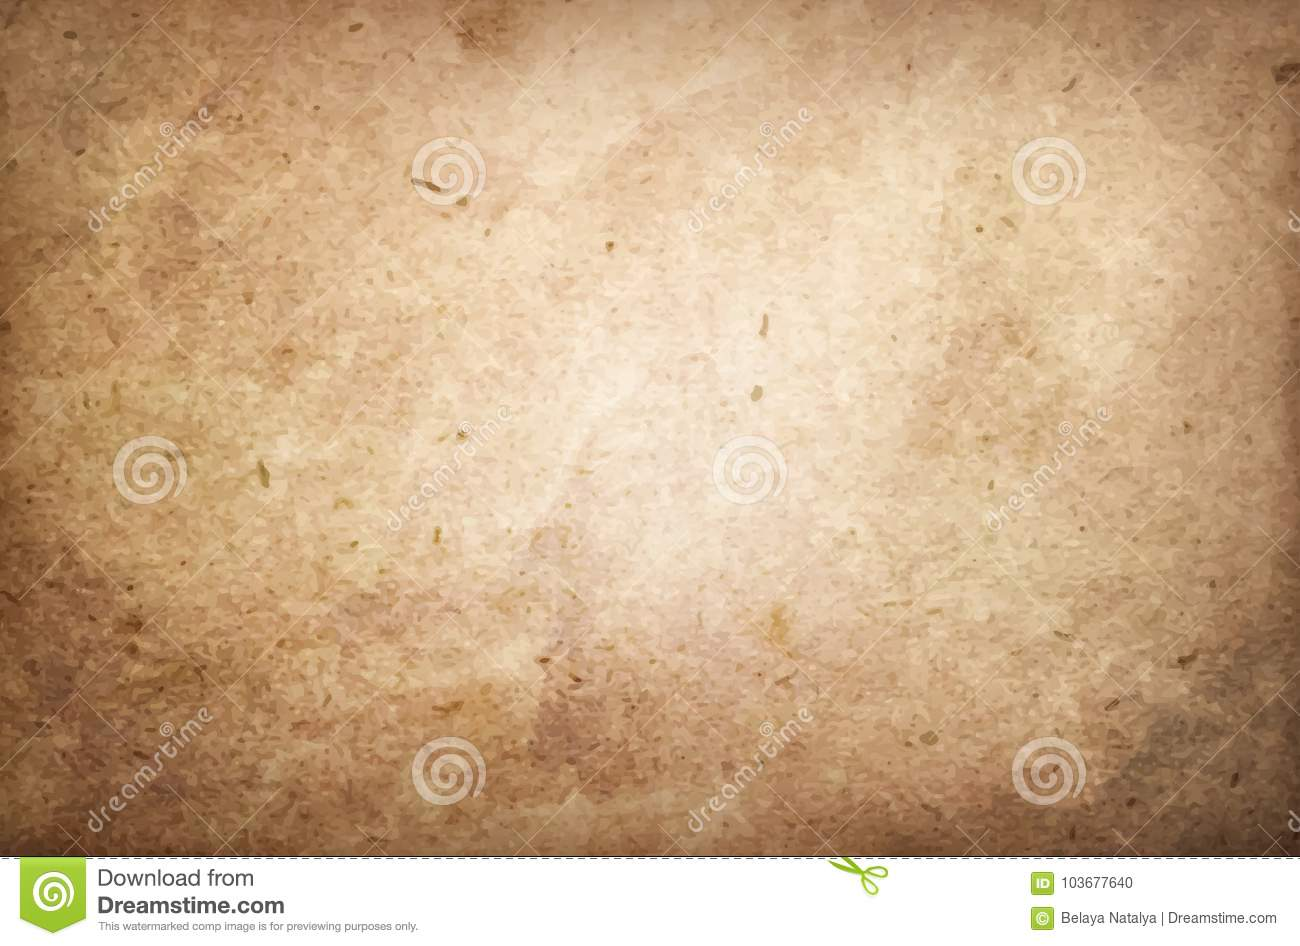 Art Texture Paper Grunge Background